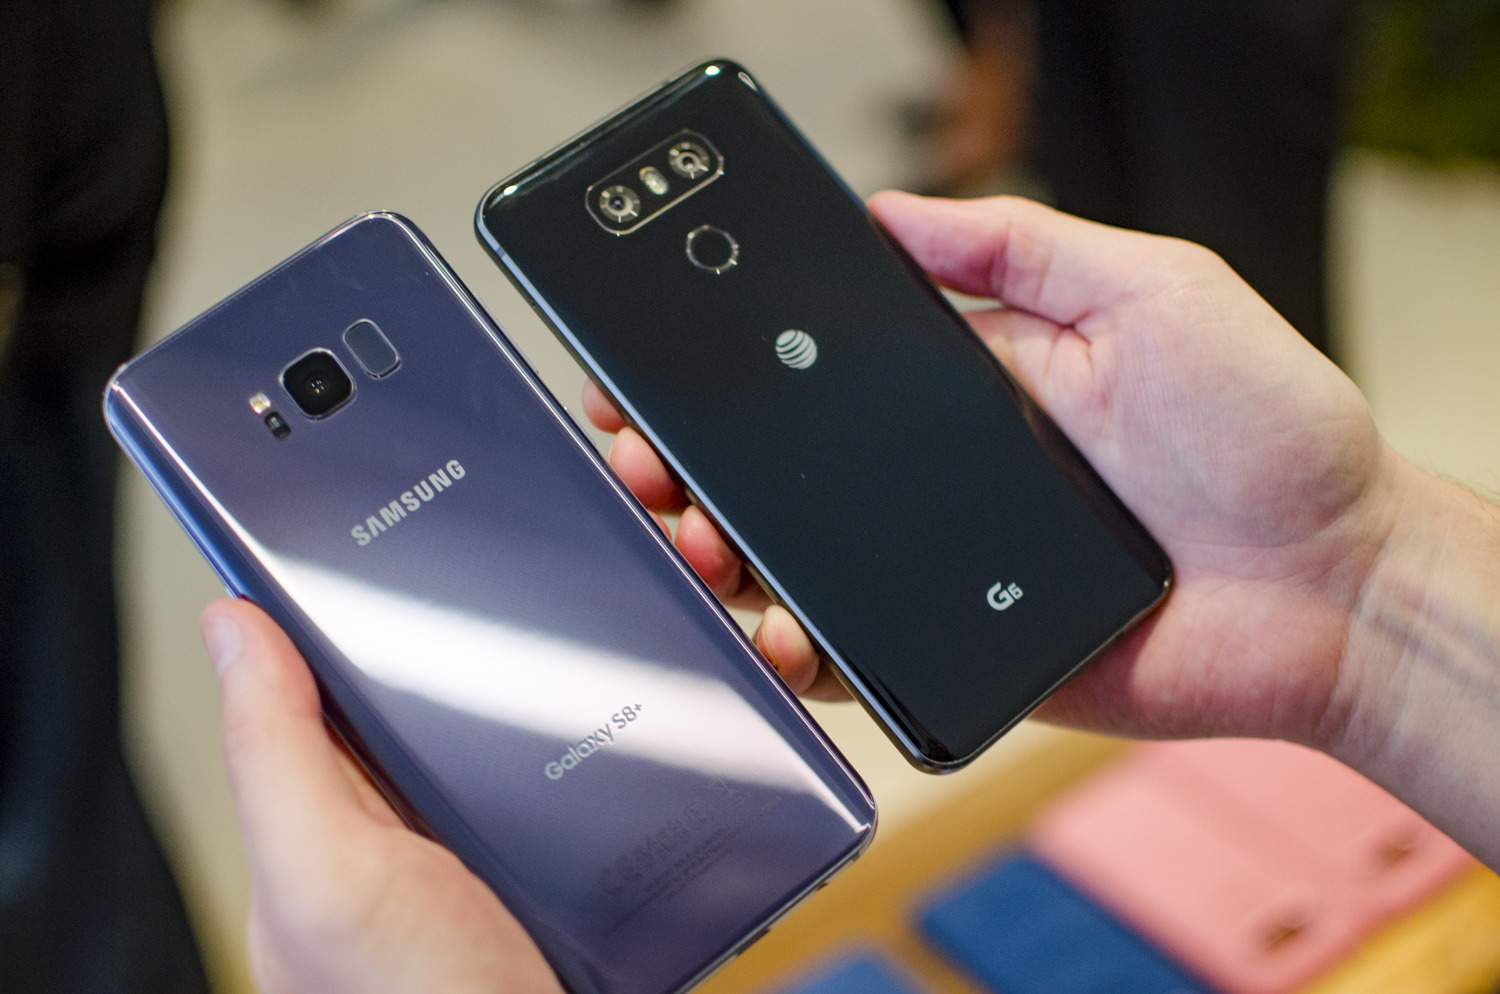 Samsung Galaxy S8 vs LG G6: Which is better? 1